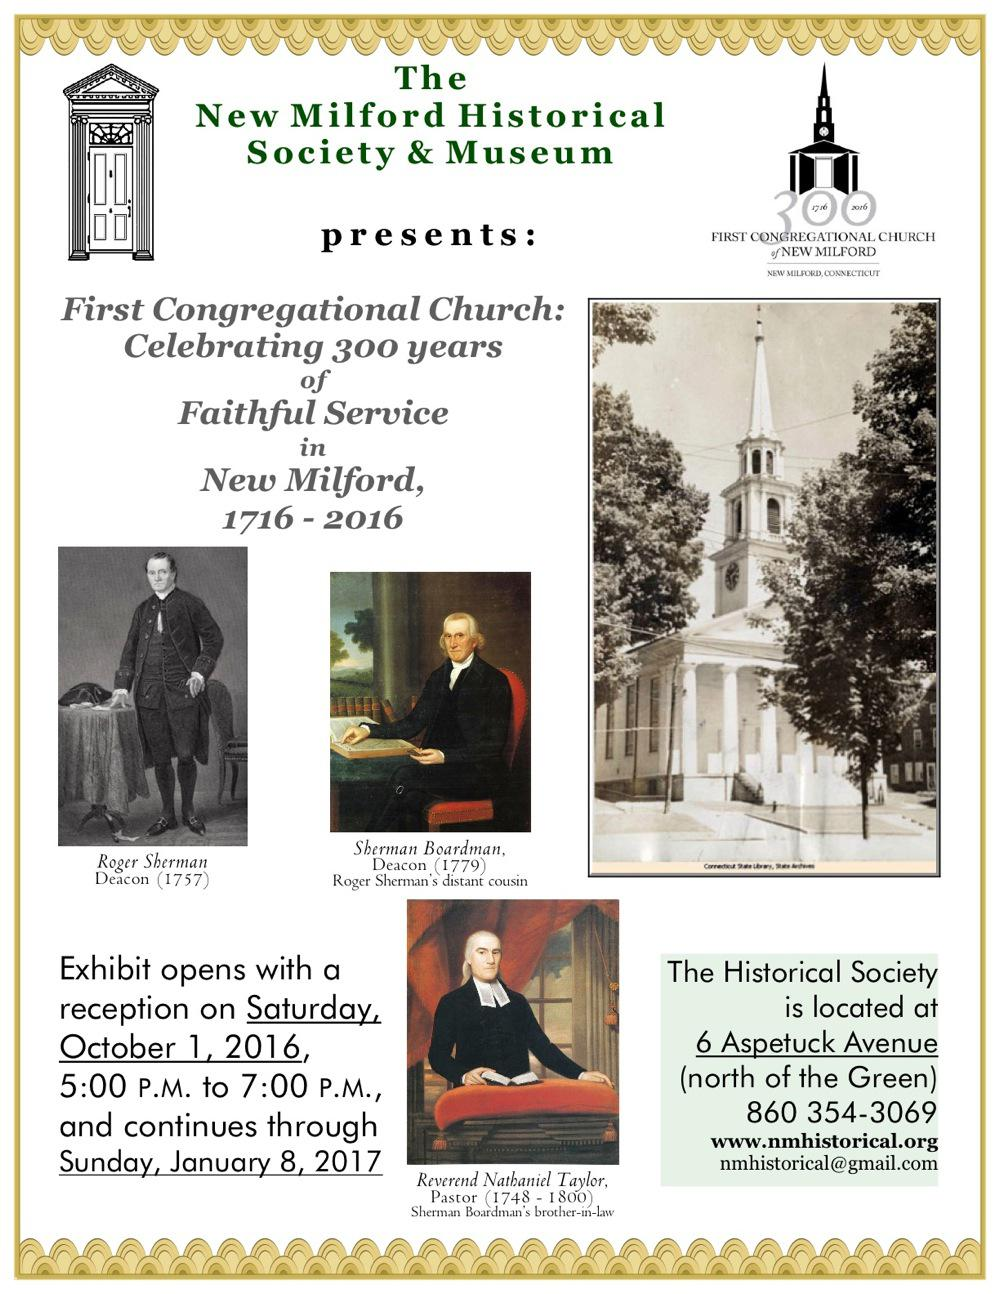 The New Milford Historical Society & Museum is pleased to announce the opening of their new exhi